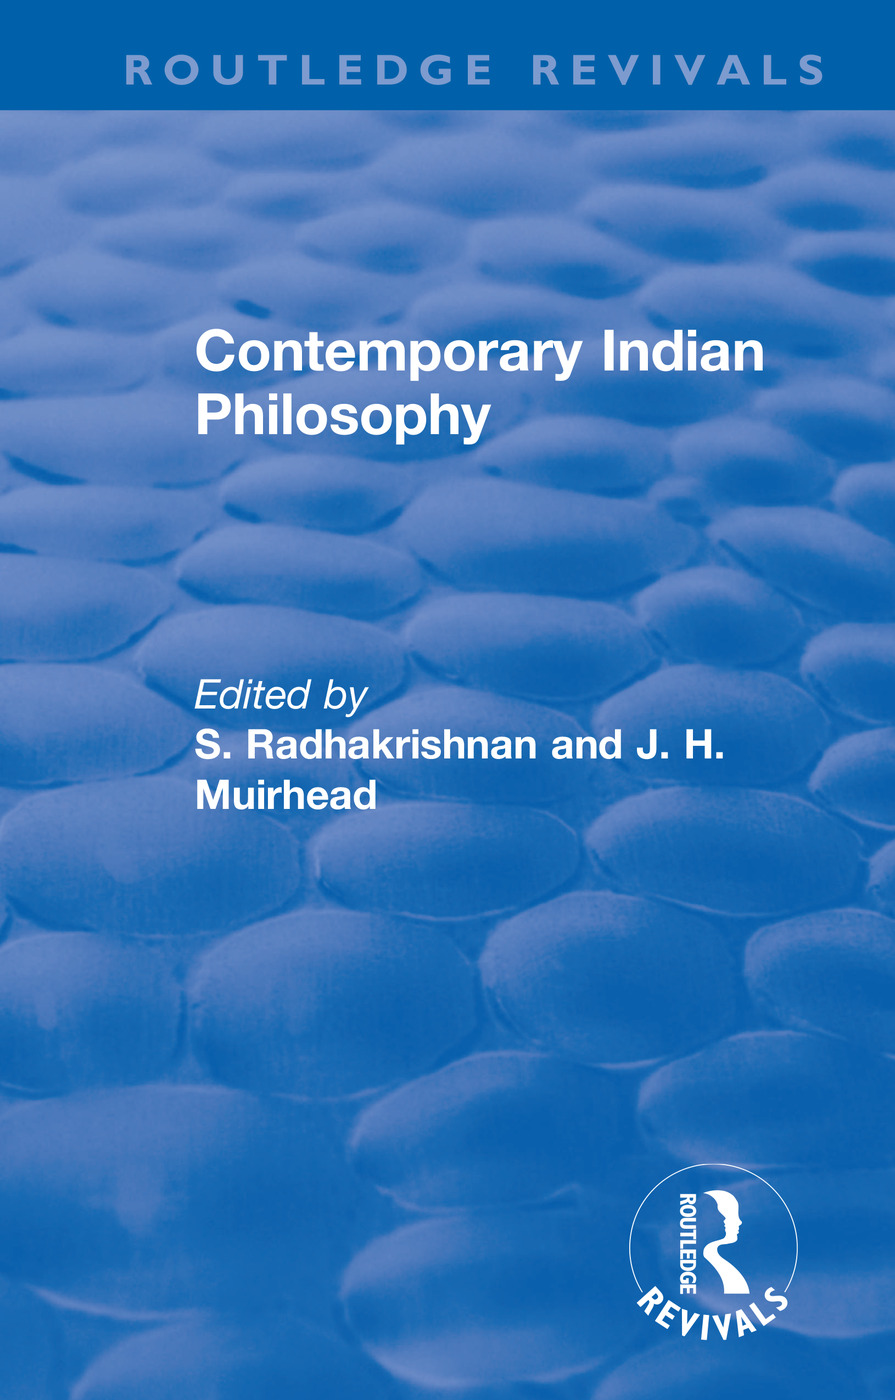 Revival: Contemporary Indian Philosophy (1936)